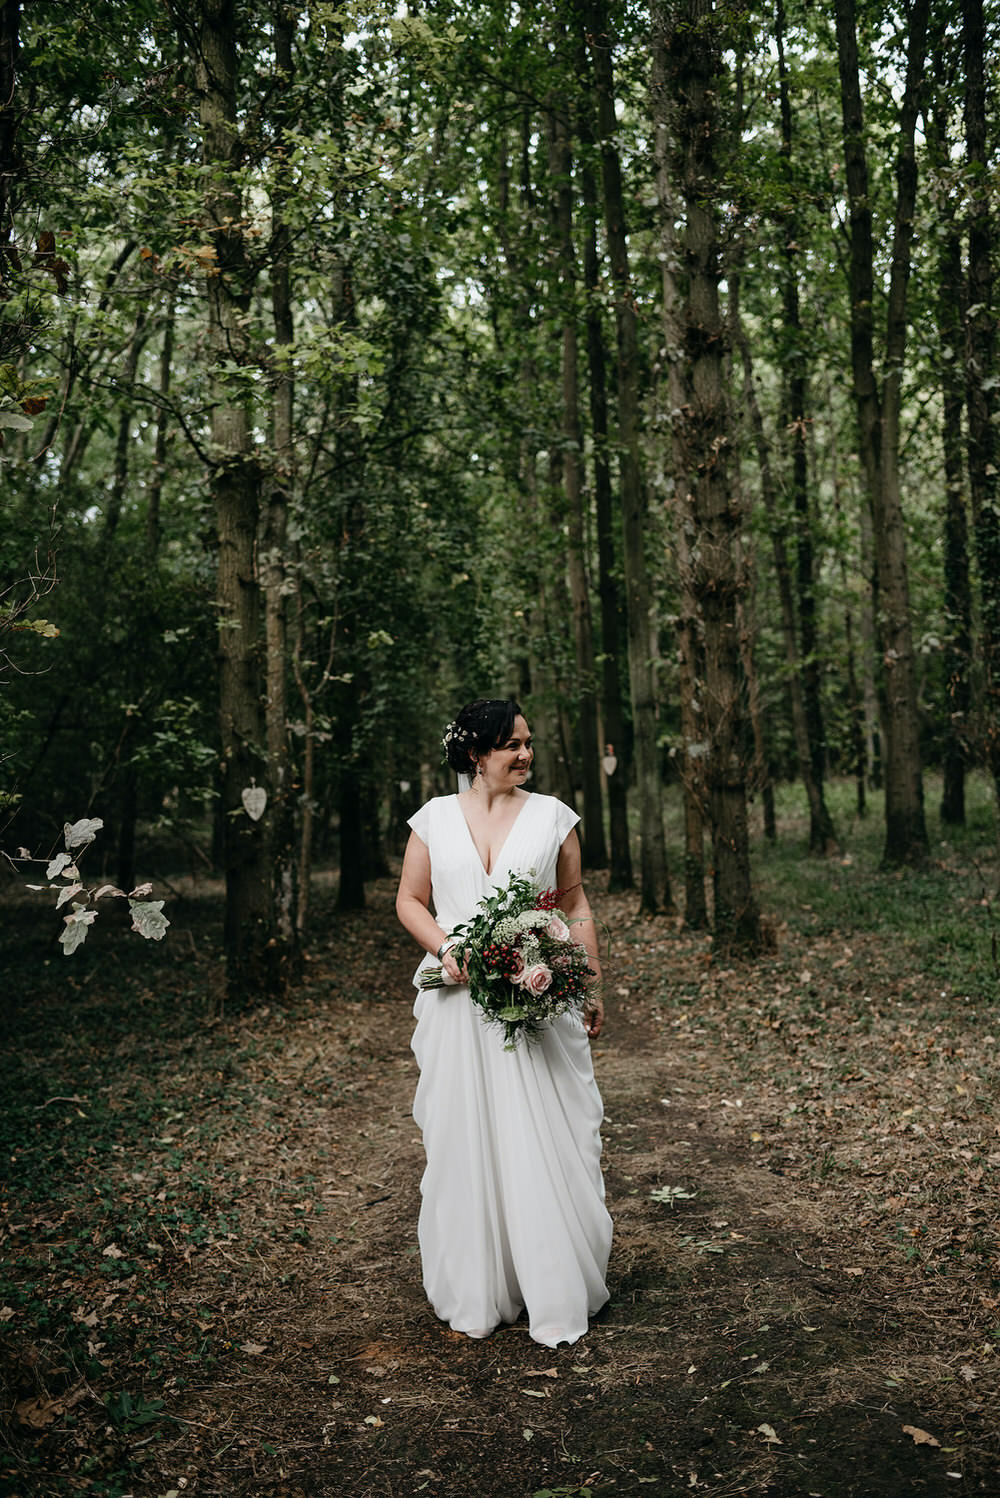 Dress Gown Bride Bridal Simple Chic Straps Veil Cotswold Woodland Glamping Wedding Elaine Williams Photography